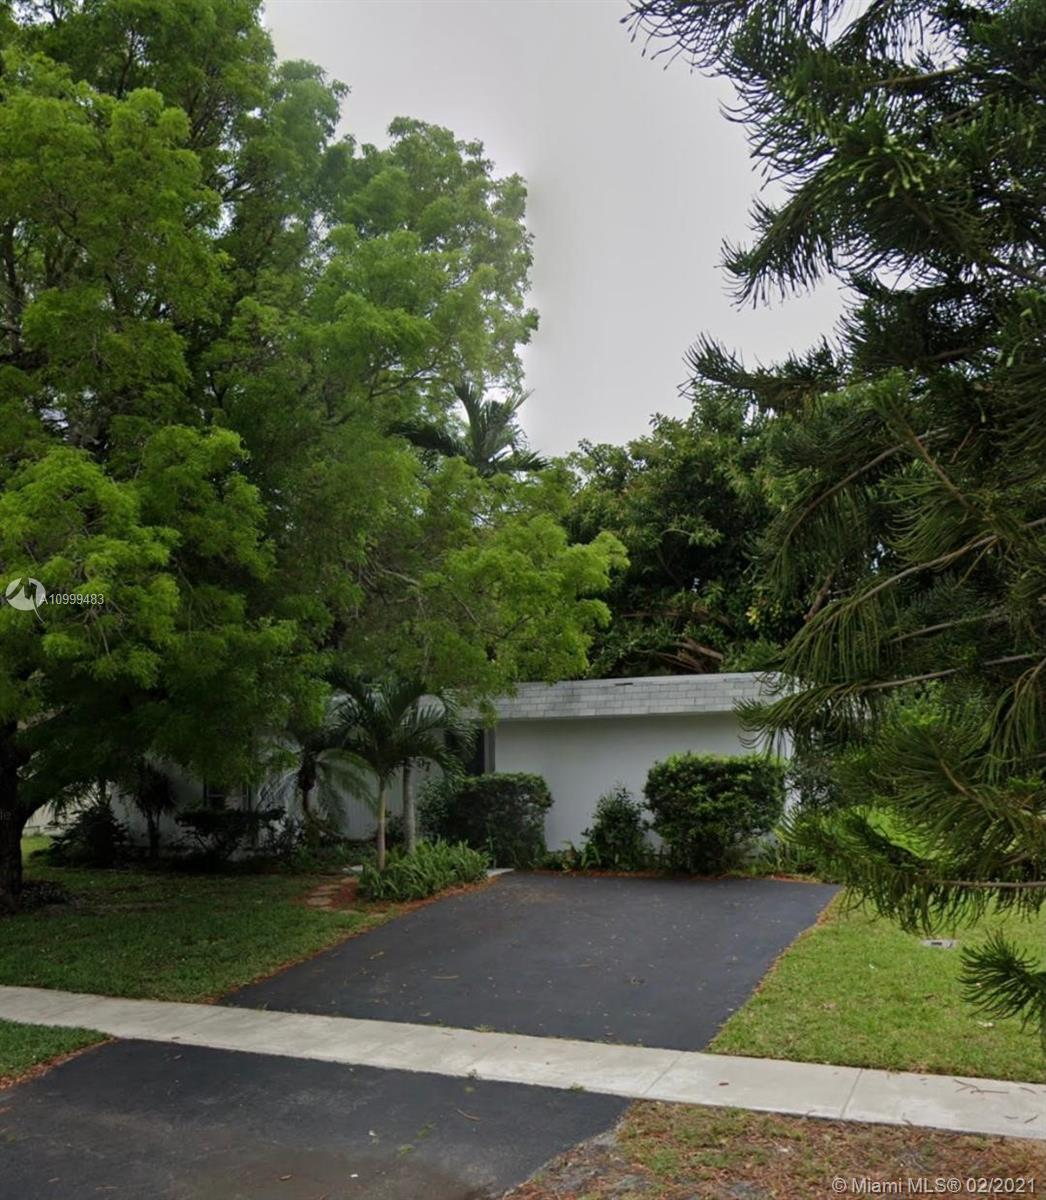 NICELY UPDATED 3/2 IN HEALTHGATE TAMARAC, NO HOPA, NO HOA!!! TILE AND WOOD FLOOR THROUGHOUT, STAINLESS STEEL APPLIANCES, OVERSIZED BACK YARD, GREAT LOCATION, CLOSE TO SHOPPING, AND MUCH MORE...